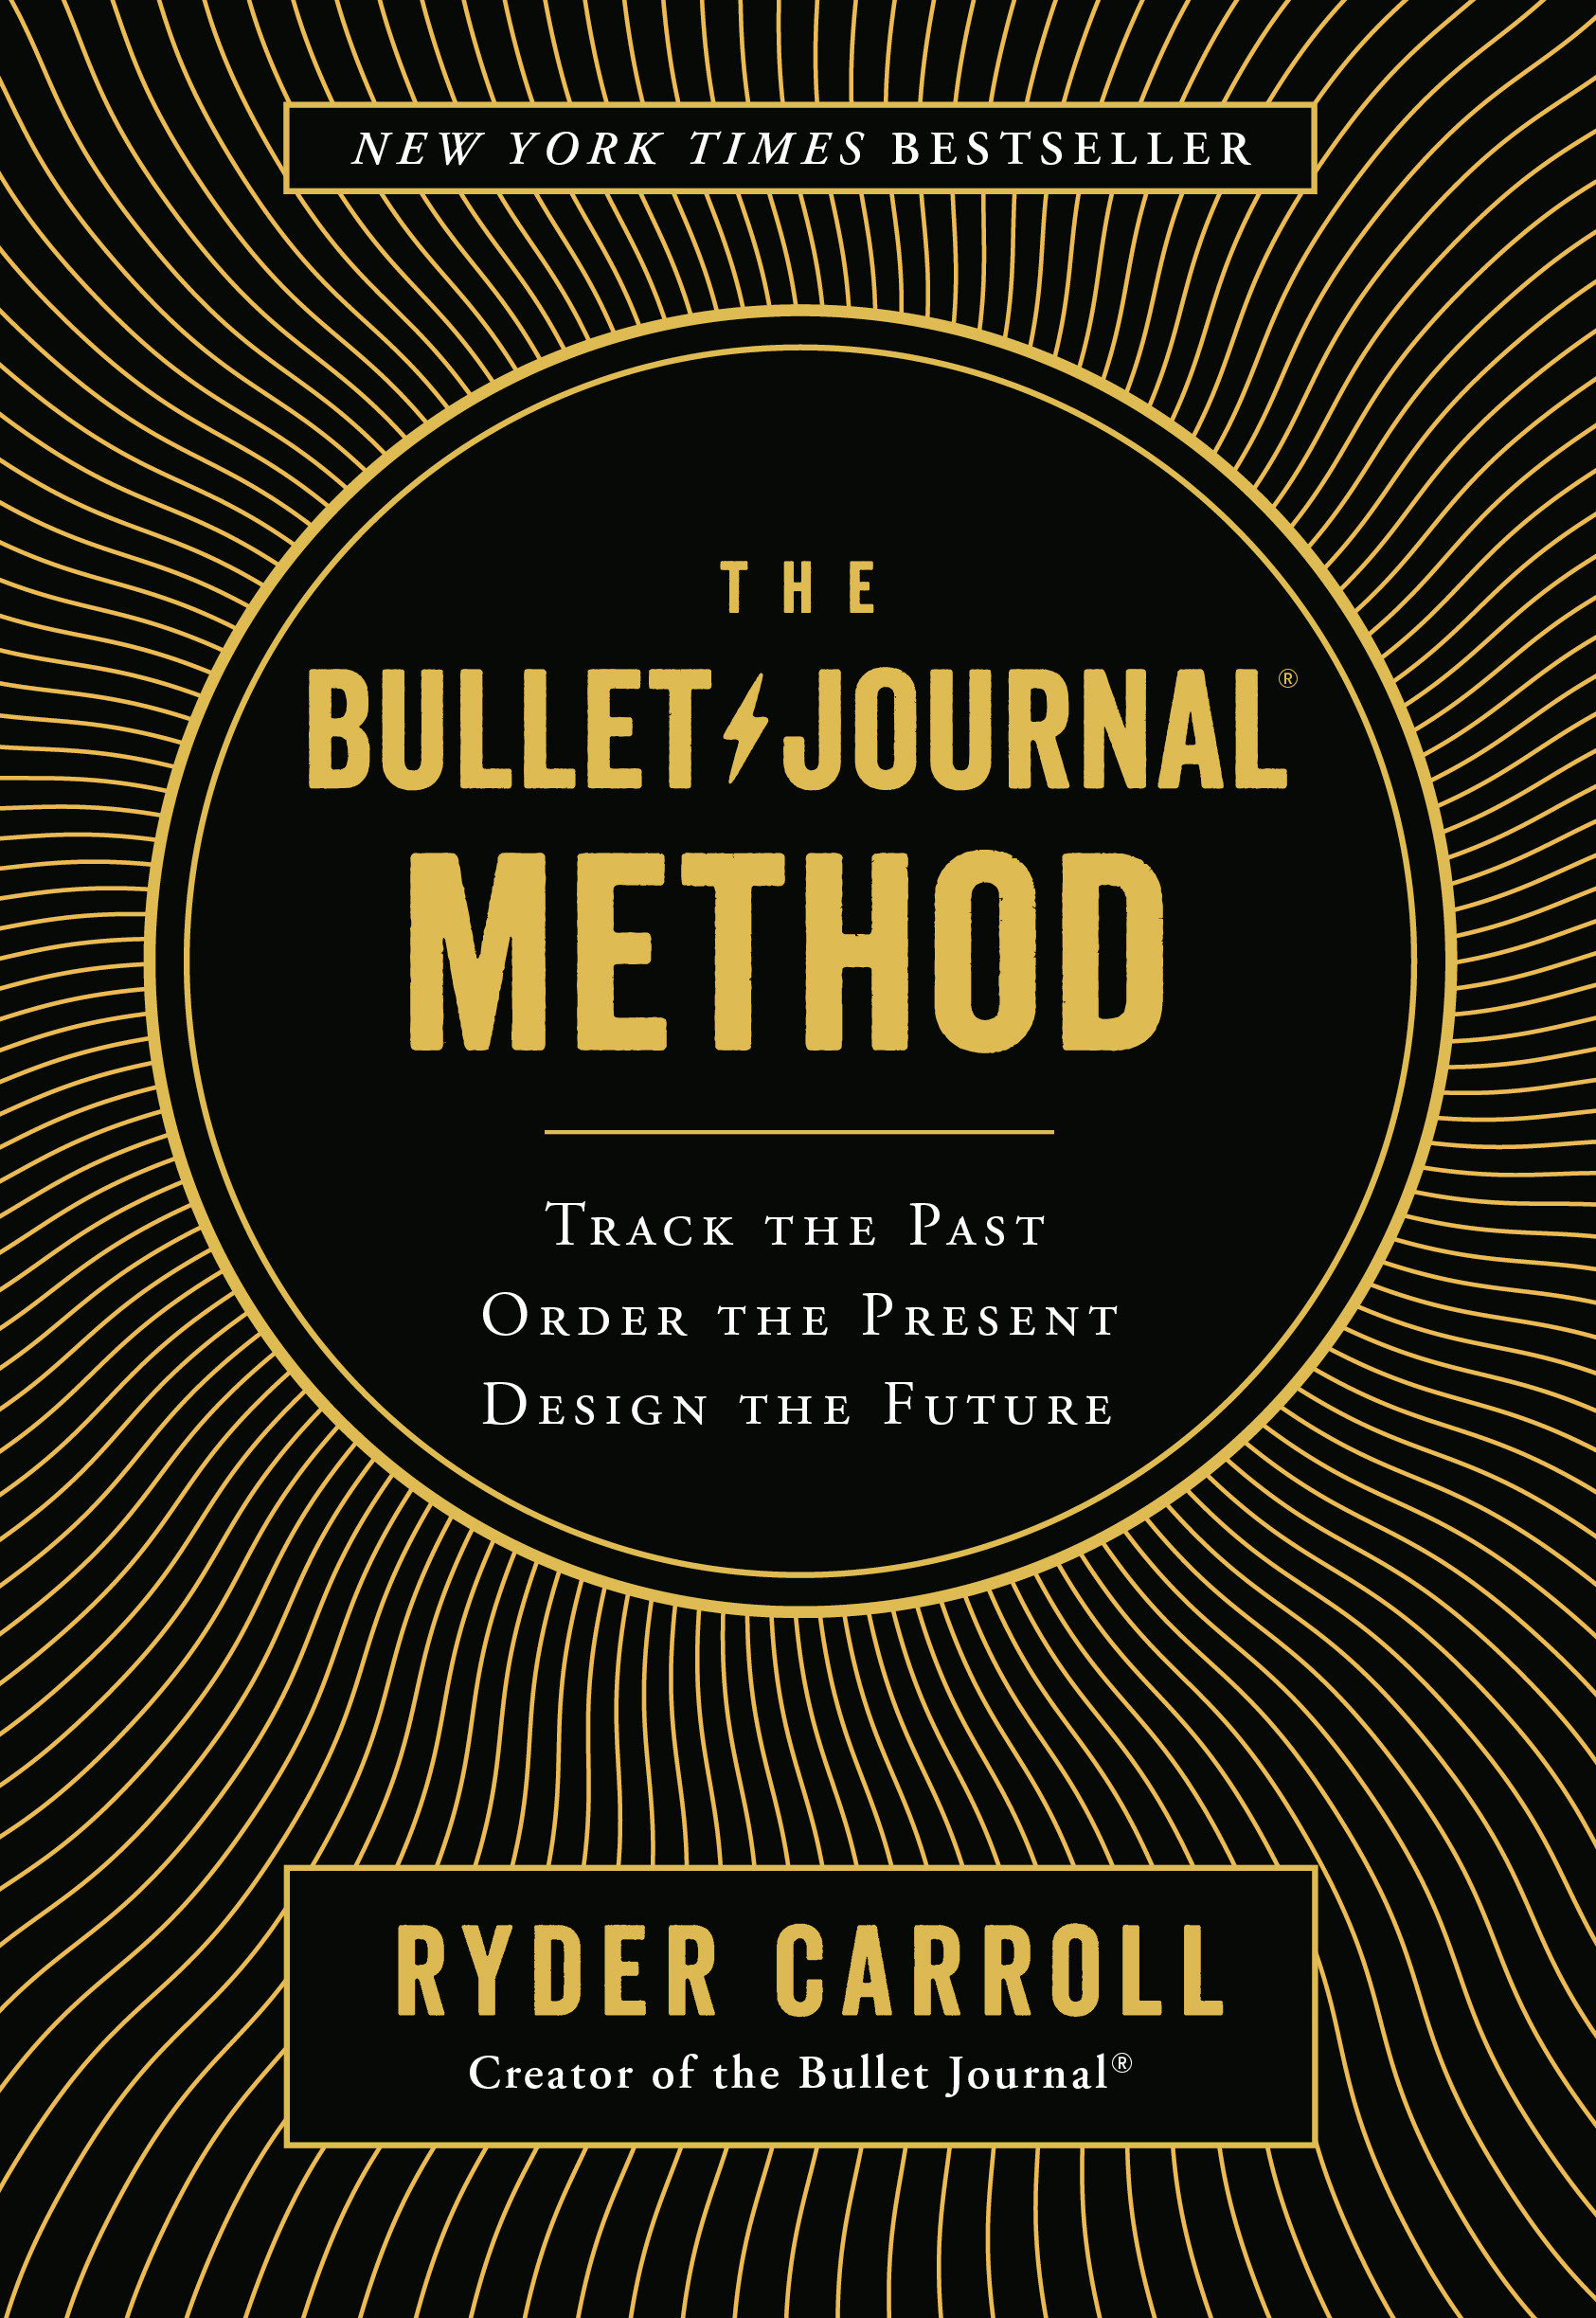 The Bullet Journal Method Track the Past, Order the Present, Design the Future